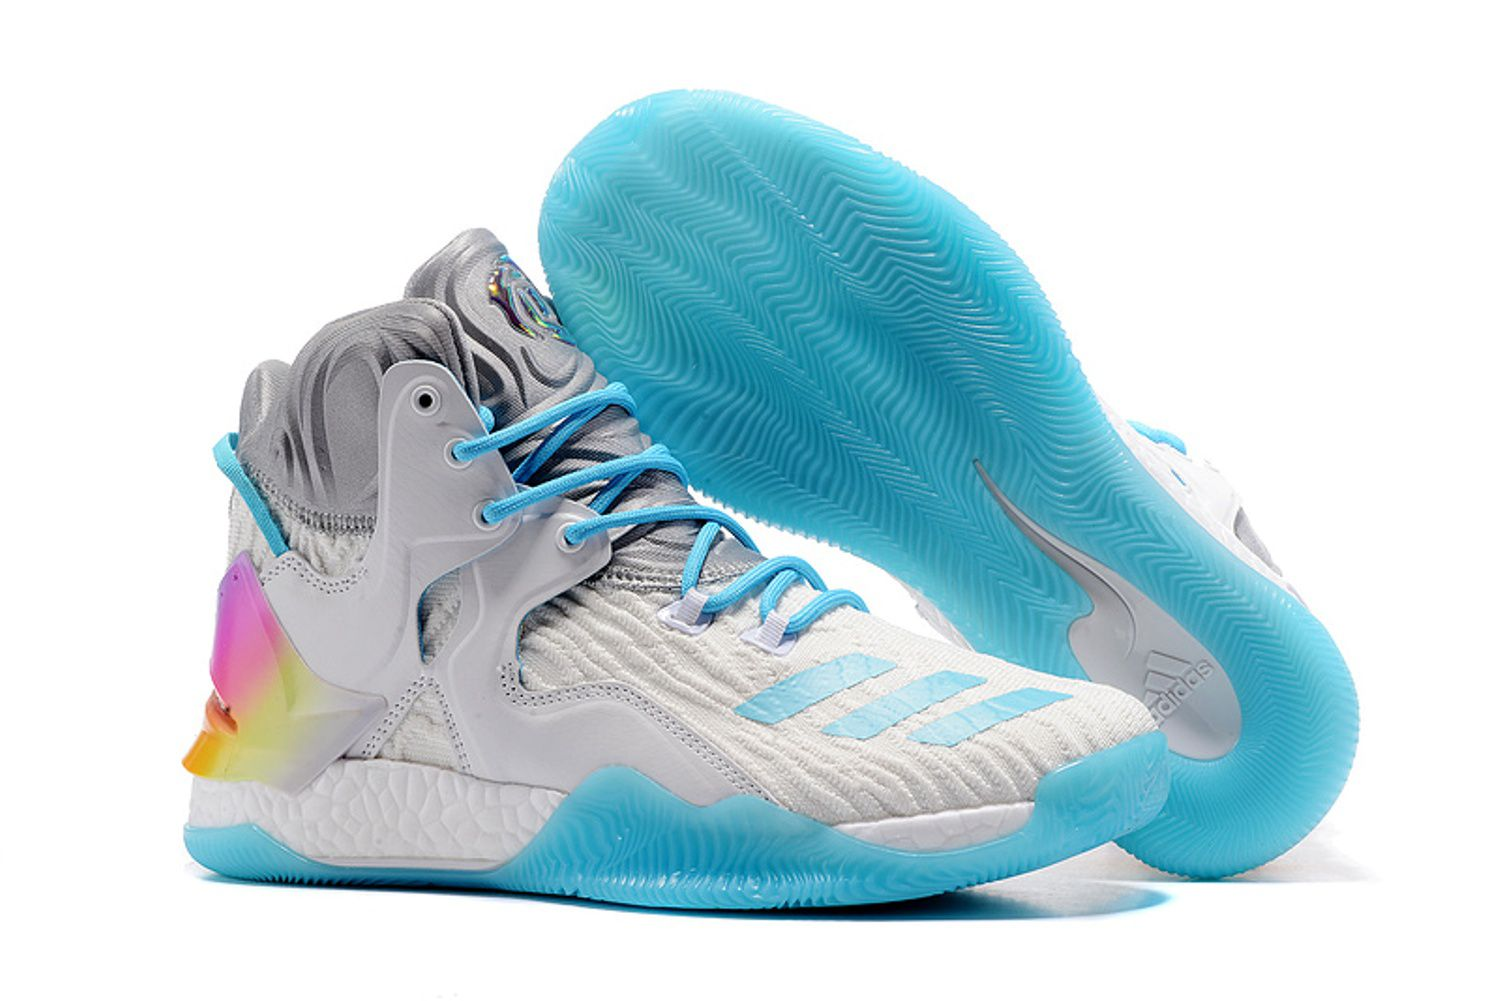 1c9f754fb545 Adidas D ROSE 7 PRIMEKNIT White Basketball Shoes - Buy Adidas D ROSE 7  PRIMEKNIT White Basketball Shoes Online at Best Prices in India on Snapdeal